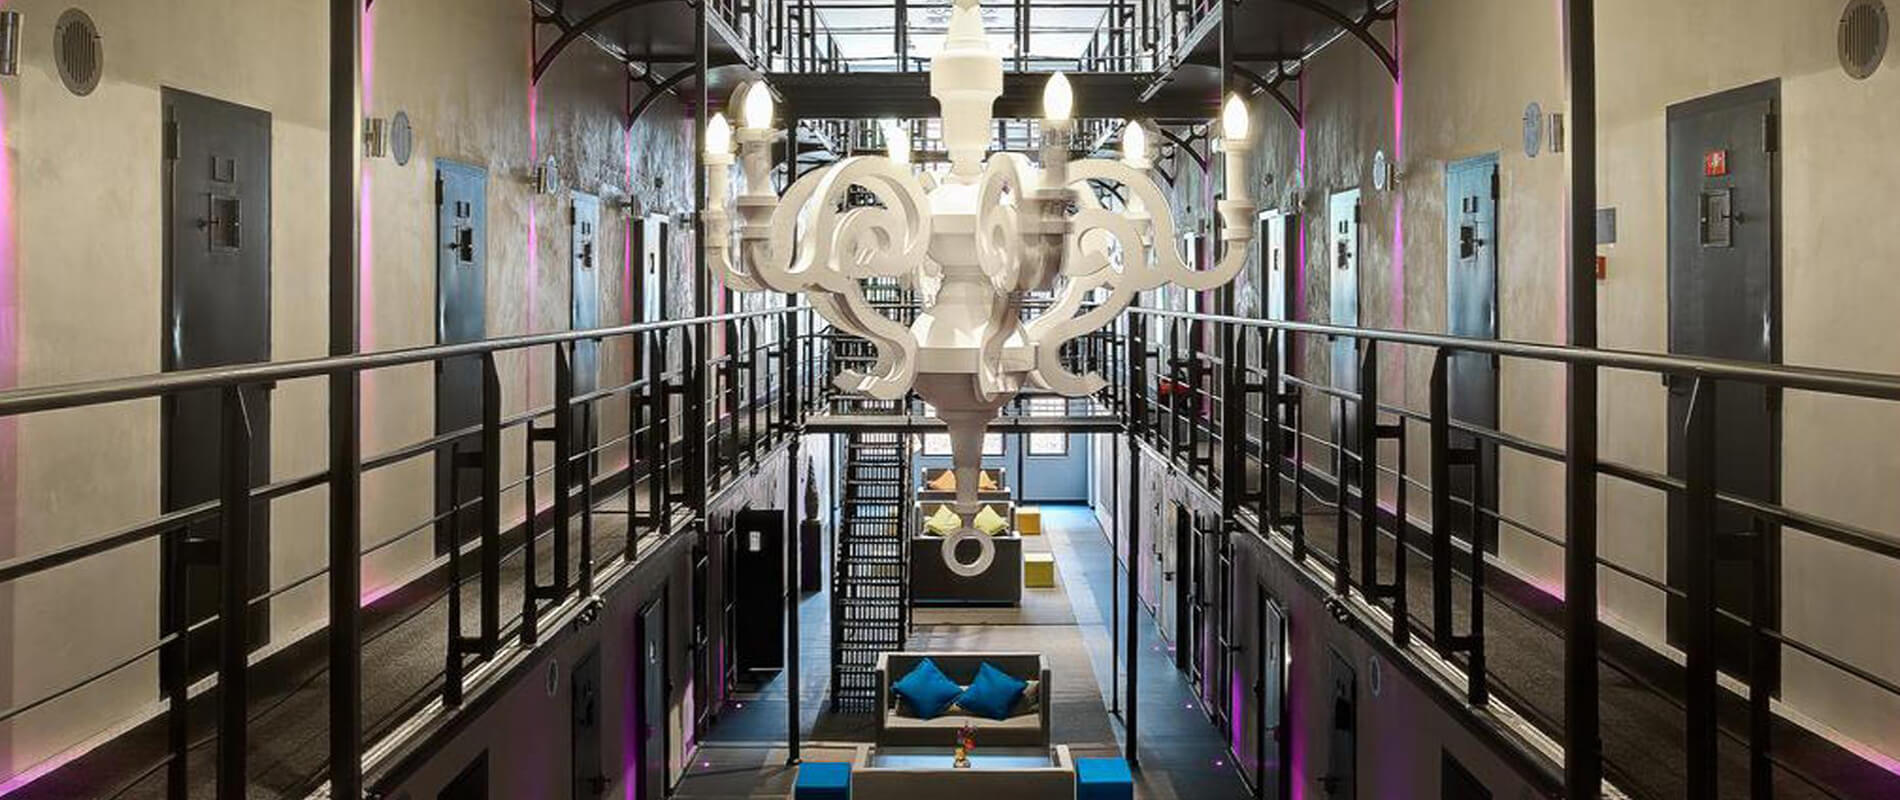 Het Arresthuis, A 'Luxury' Prison in Holland. Sleep in a Luxury Prison